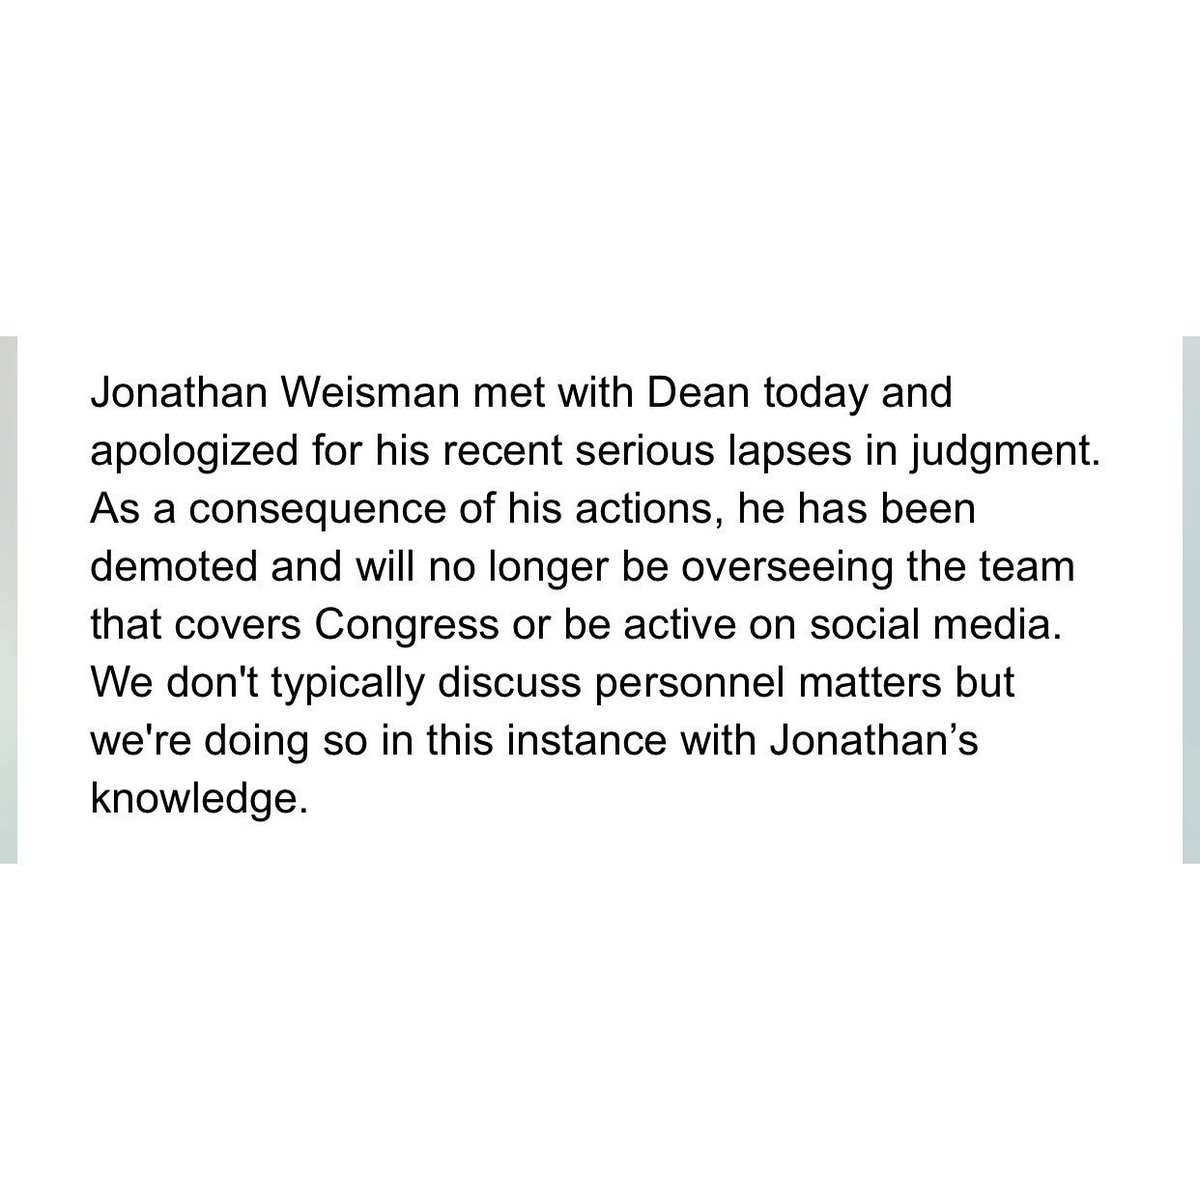 7. NEW: A New York Times spokesperson just sent me this statement re Jonathan Weisman. As a result of his tweets, Weisman will be demoted.  He will no longer oversee the team that covers Congress and will no longer be active on social media.